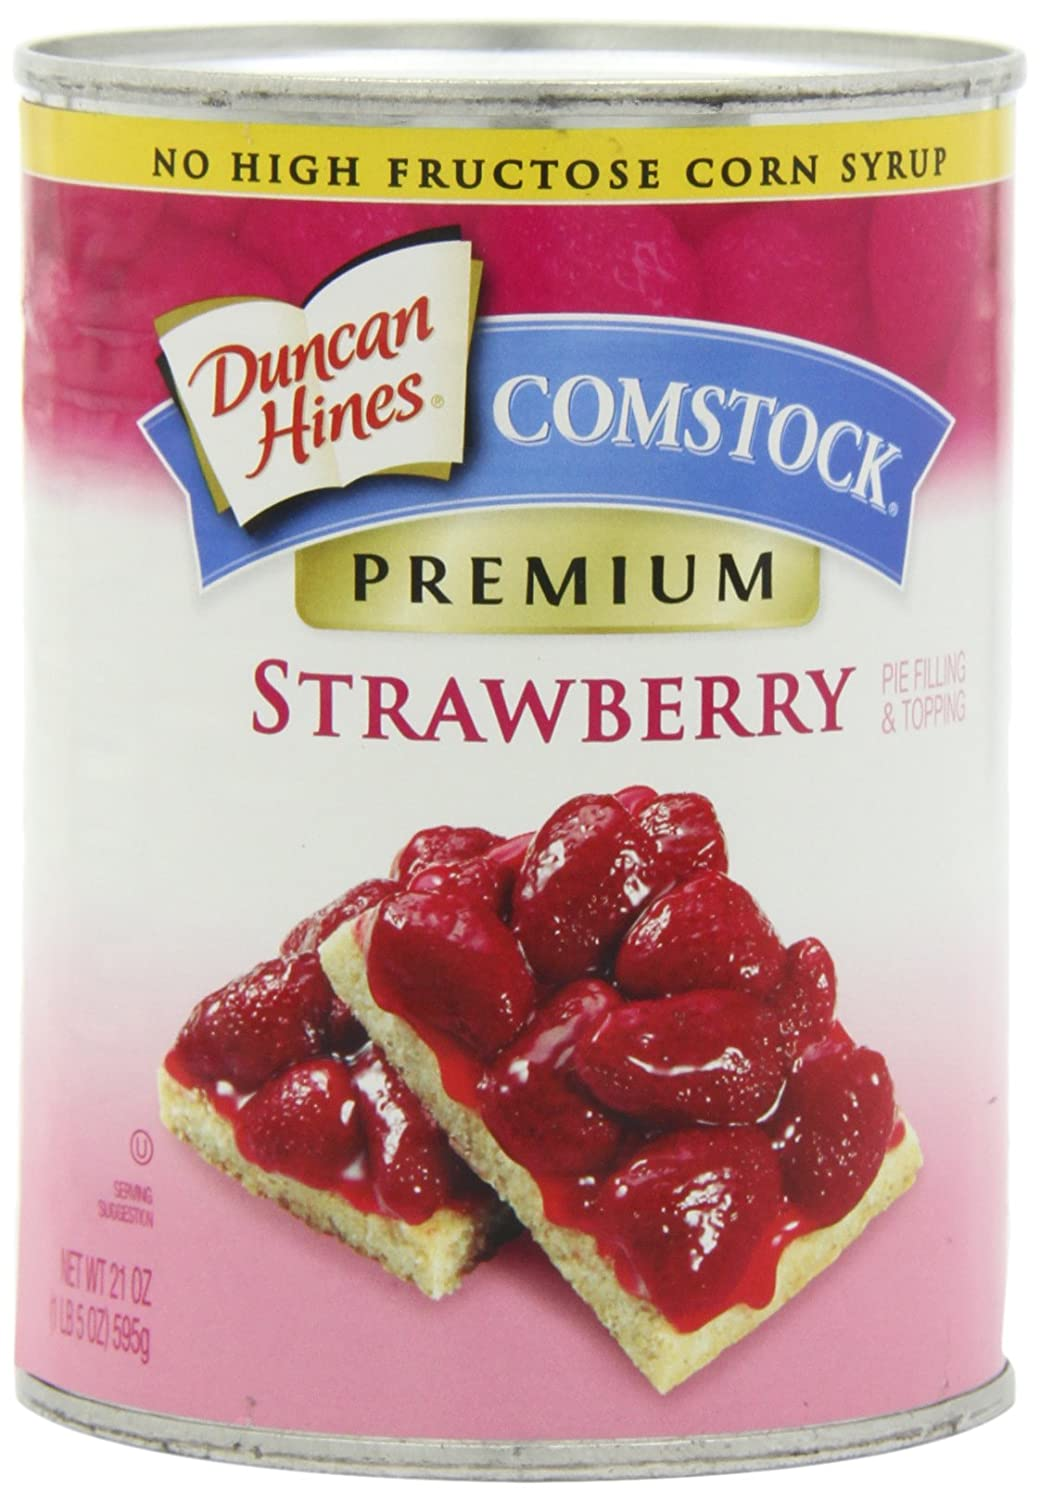 Amazon Com Comstock Premium Fruit Pie Filling Topping Strawberry 21 Ounce Pack Of 4 Pie And Cobbler Fillings Grocery Gourmet Food